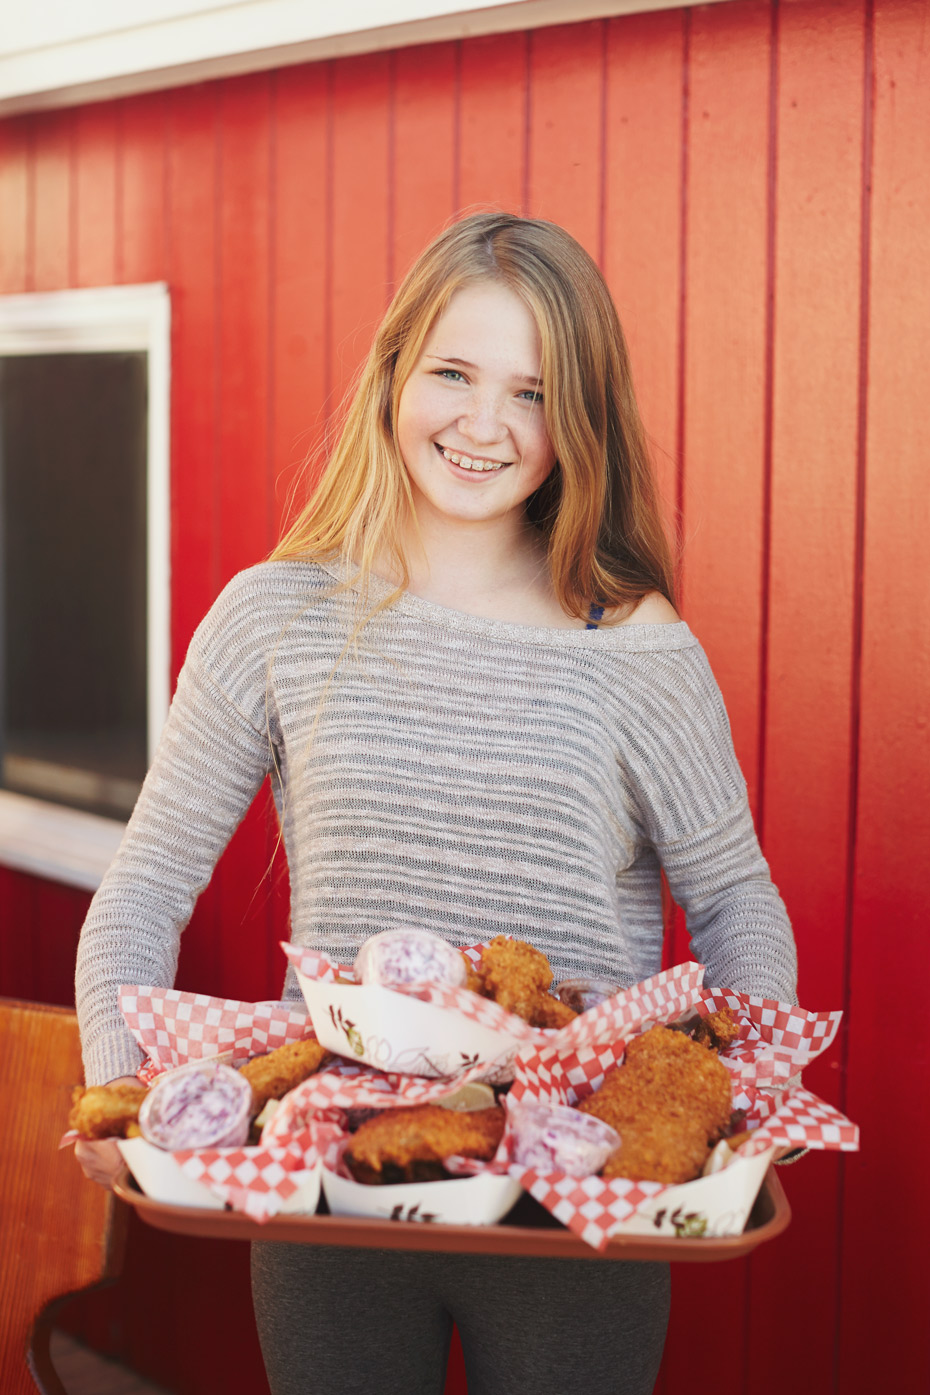 Stacey Van Berkel Photography I Young blonde girl holding huge tray of fish and chips I Richard's Seafood I Covehead Wharf, Prince Edward Island, Canada